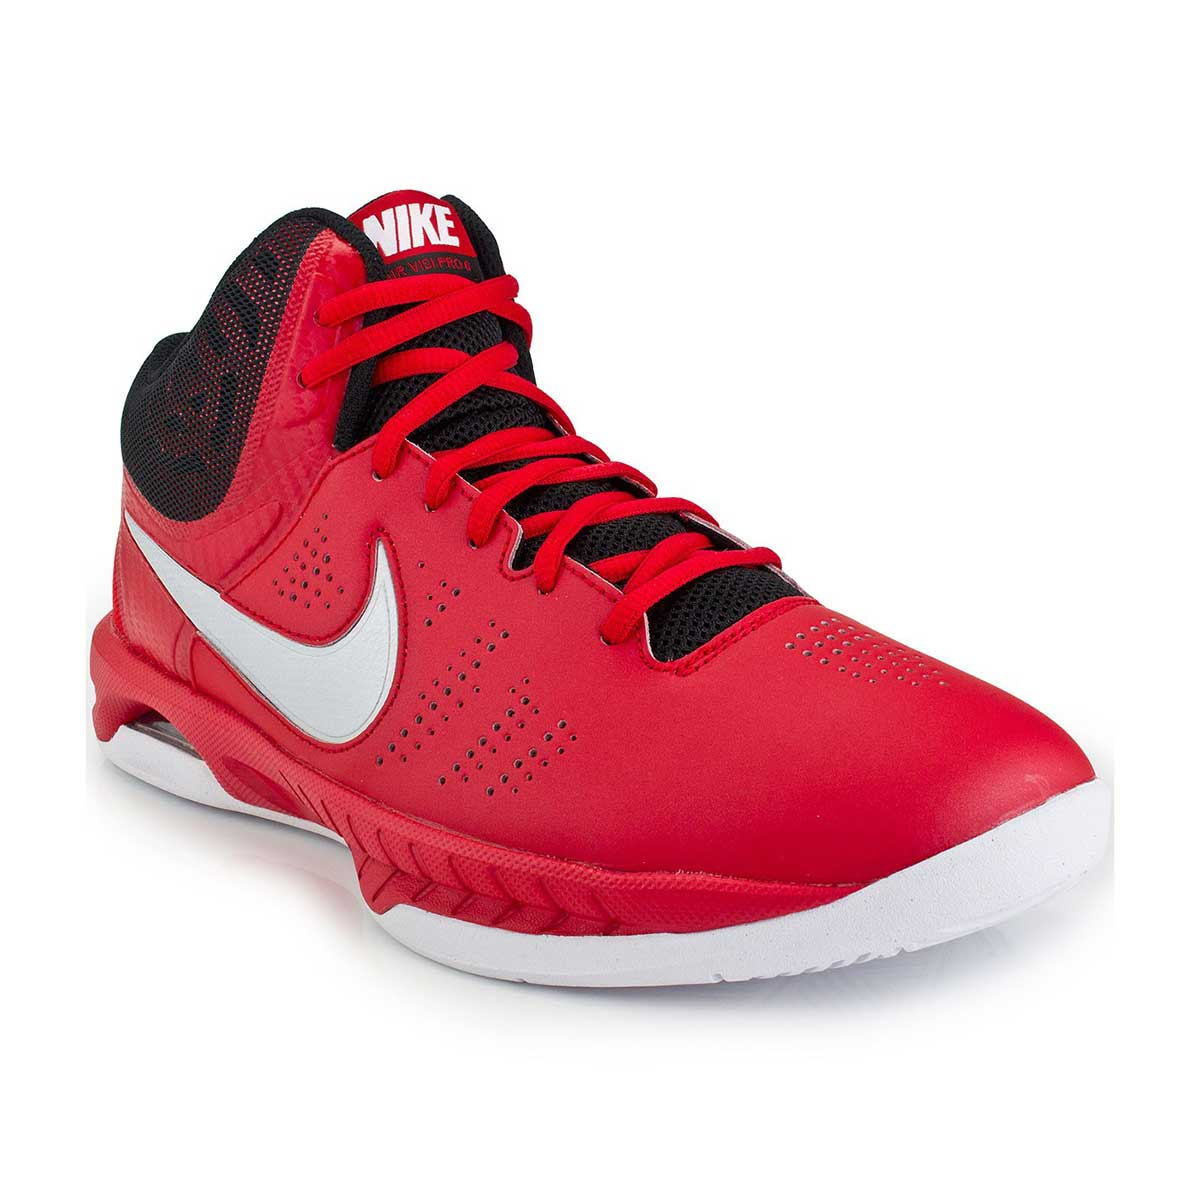 f4d548154d6 Buy Nike Air Visi Pro VI Basketball Shoes India